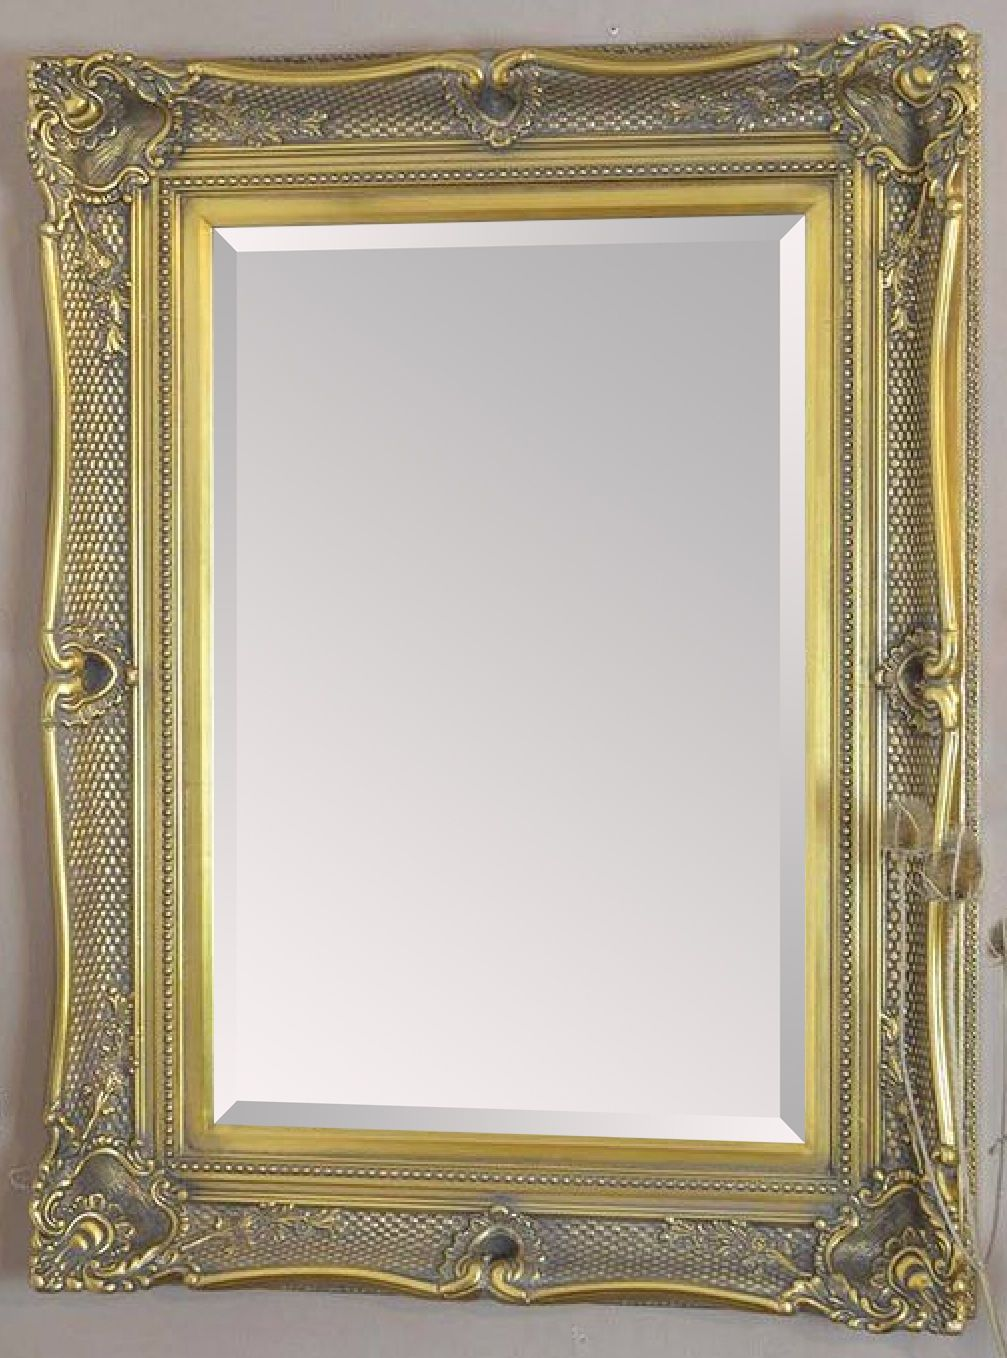 Huge Antique Gold Decorative Mirror Save S Other Sizes